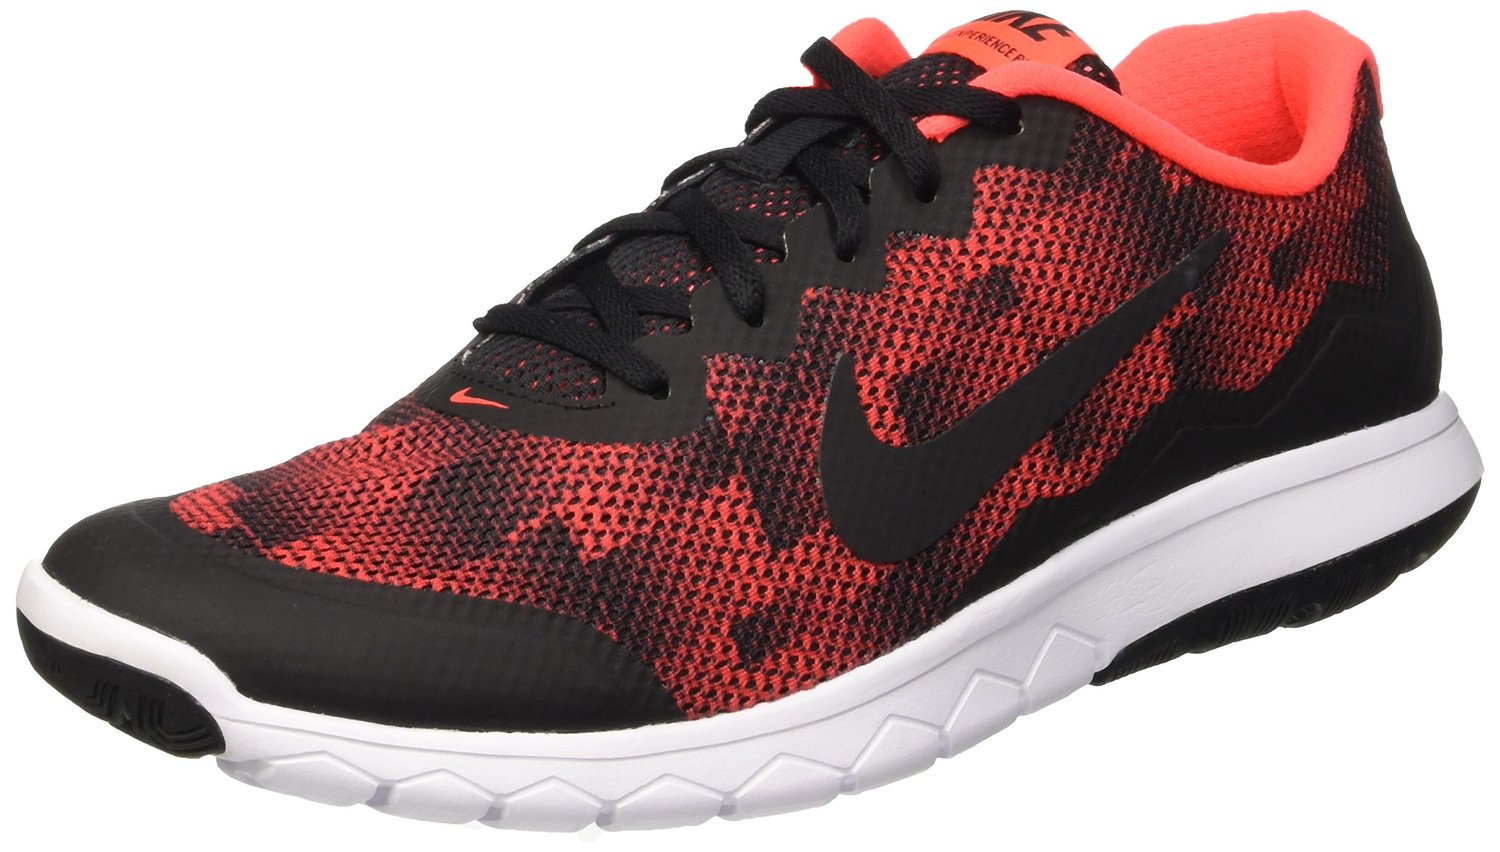 e25cc170b8f12 Get Quotations · Nike Men s Flex Experience Rn 4 Prem Running Shoe